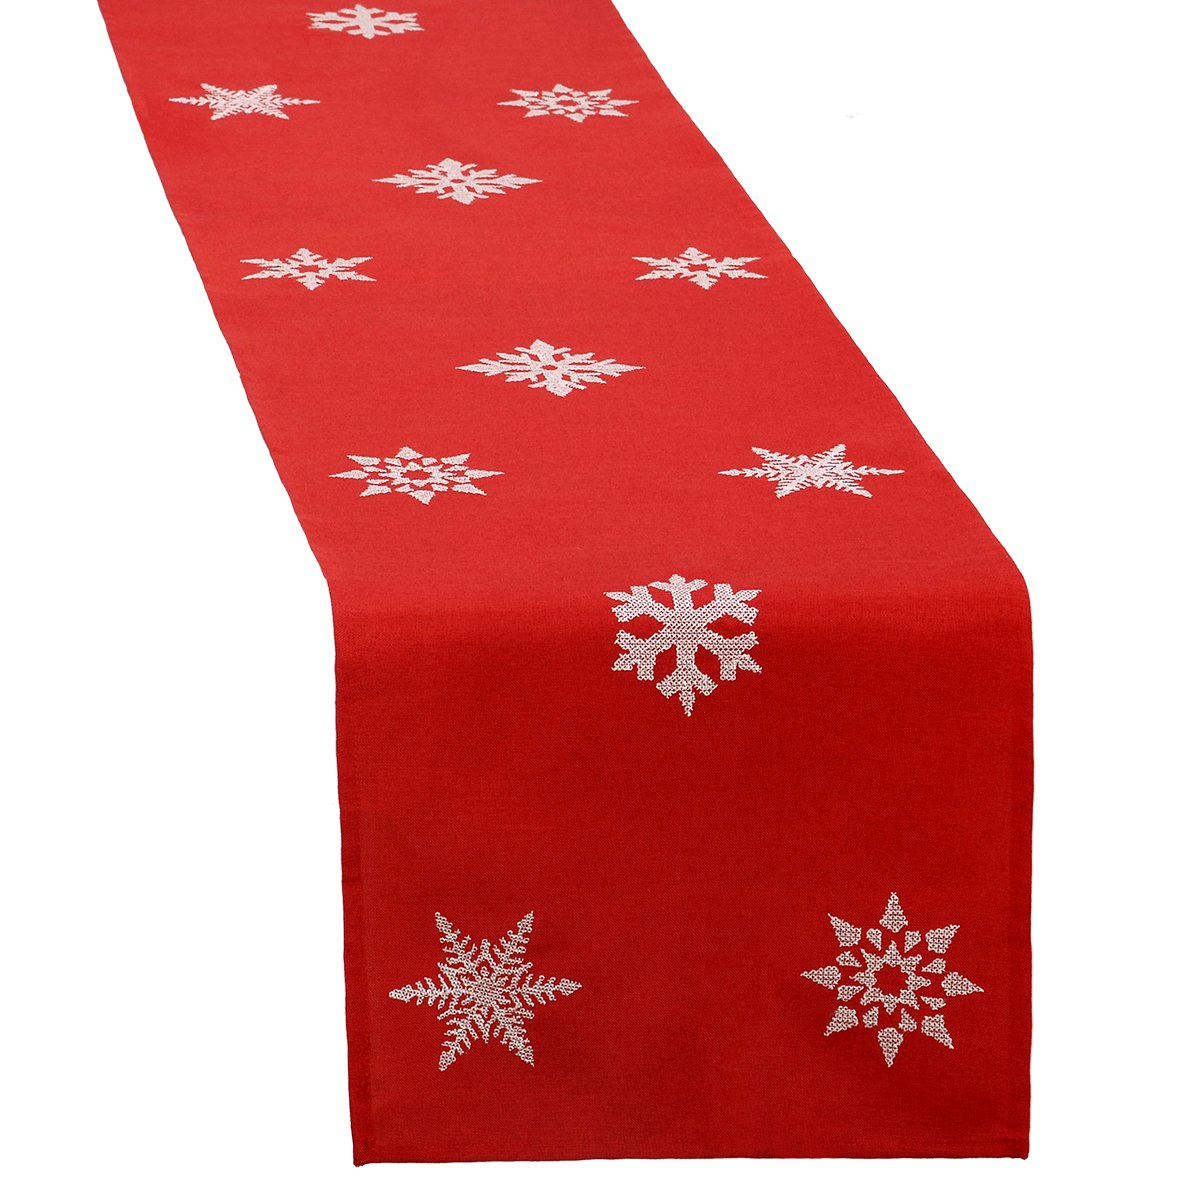 White Embroidered Snowflake Red Christmas Table Runner | ChristmasTablescapeDecor.com